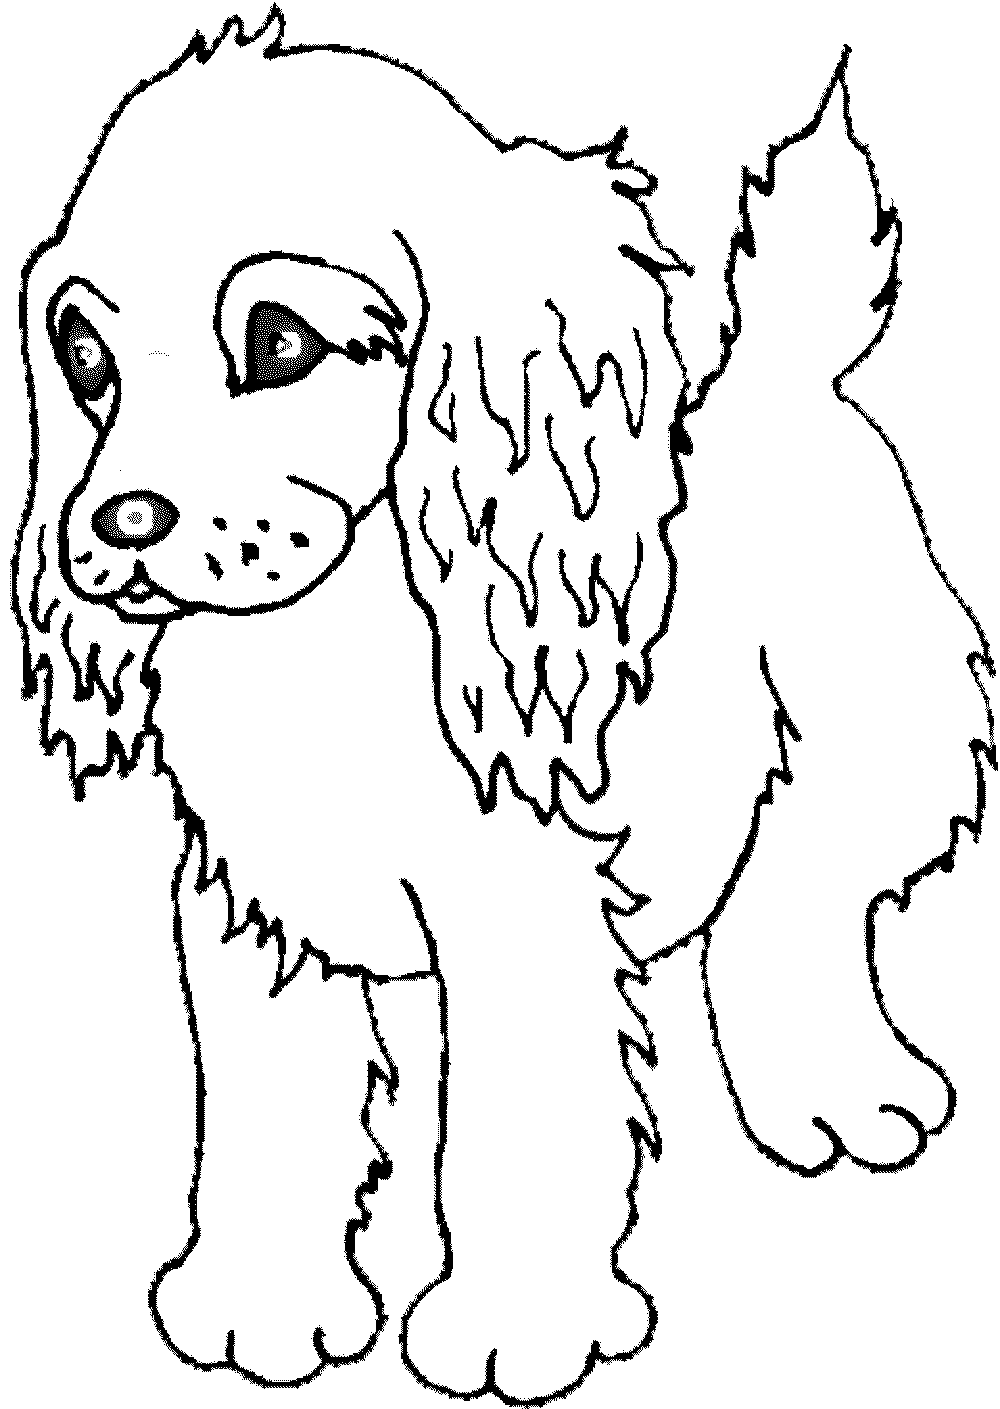 Employ Dog Coloring Pages for Your Children s Creative Time